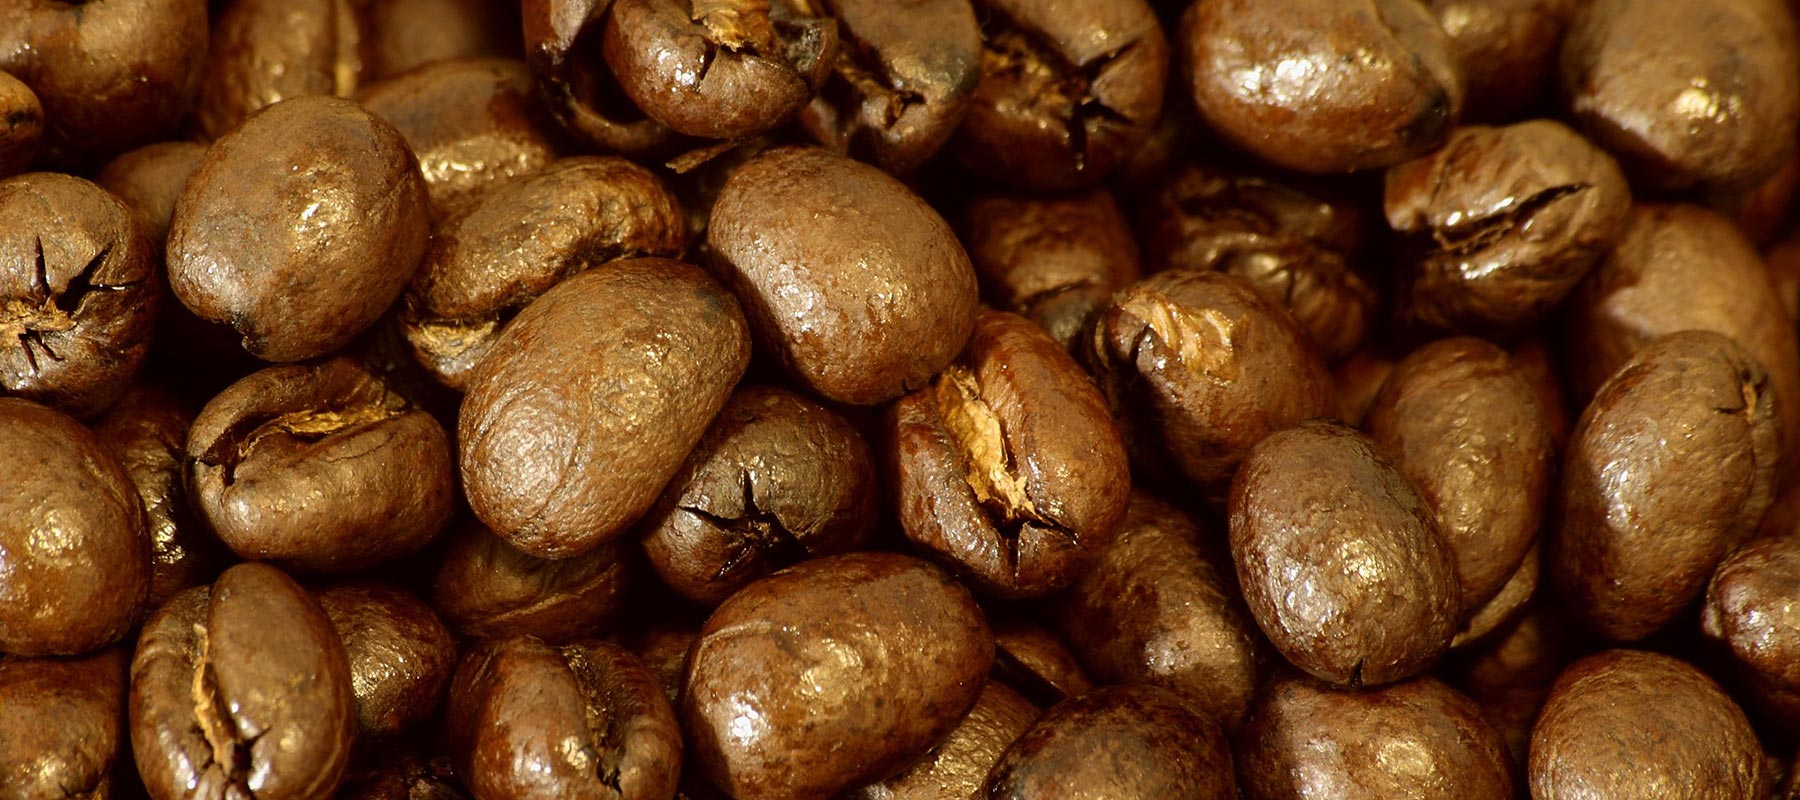 close up of roasted peaberry coffee